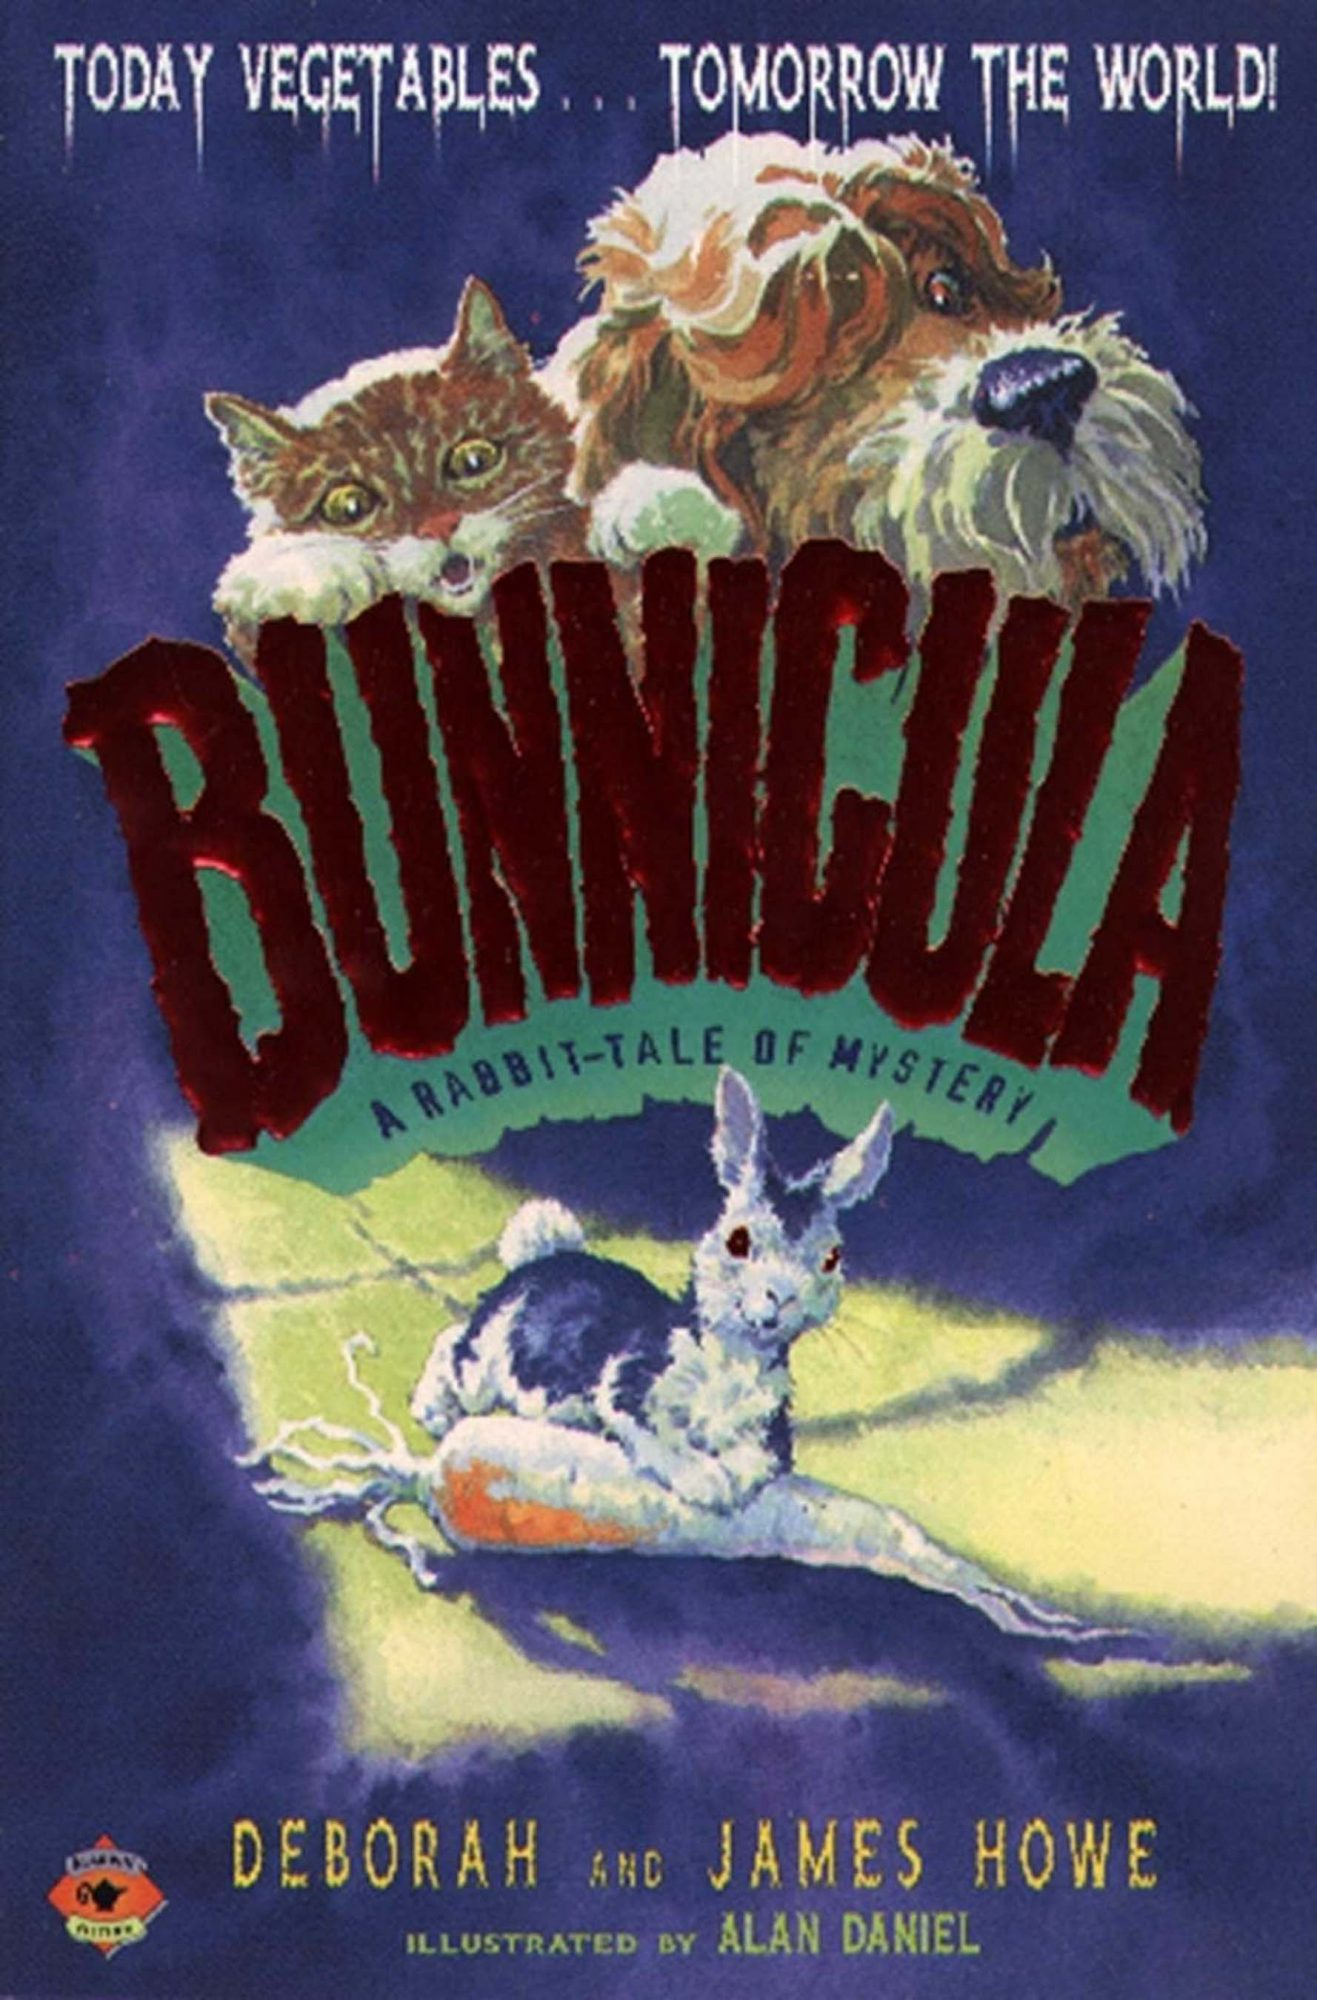 bunnicula-a-rabbit-tale-of-mystery-bunnicula-and-friends-book-1_10499373